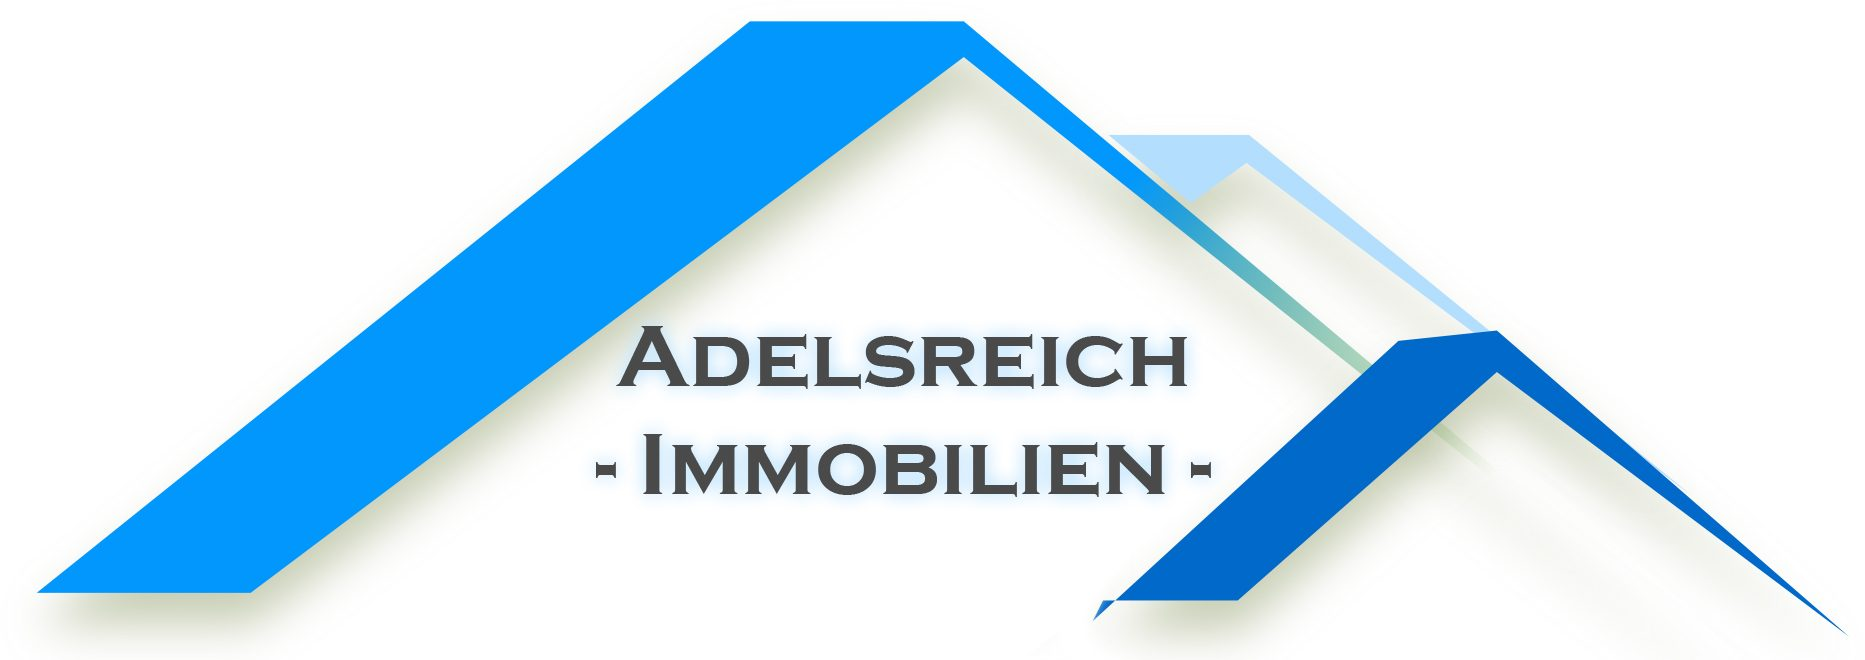 Adelsreich Immobilien